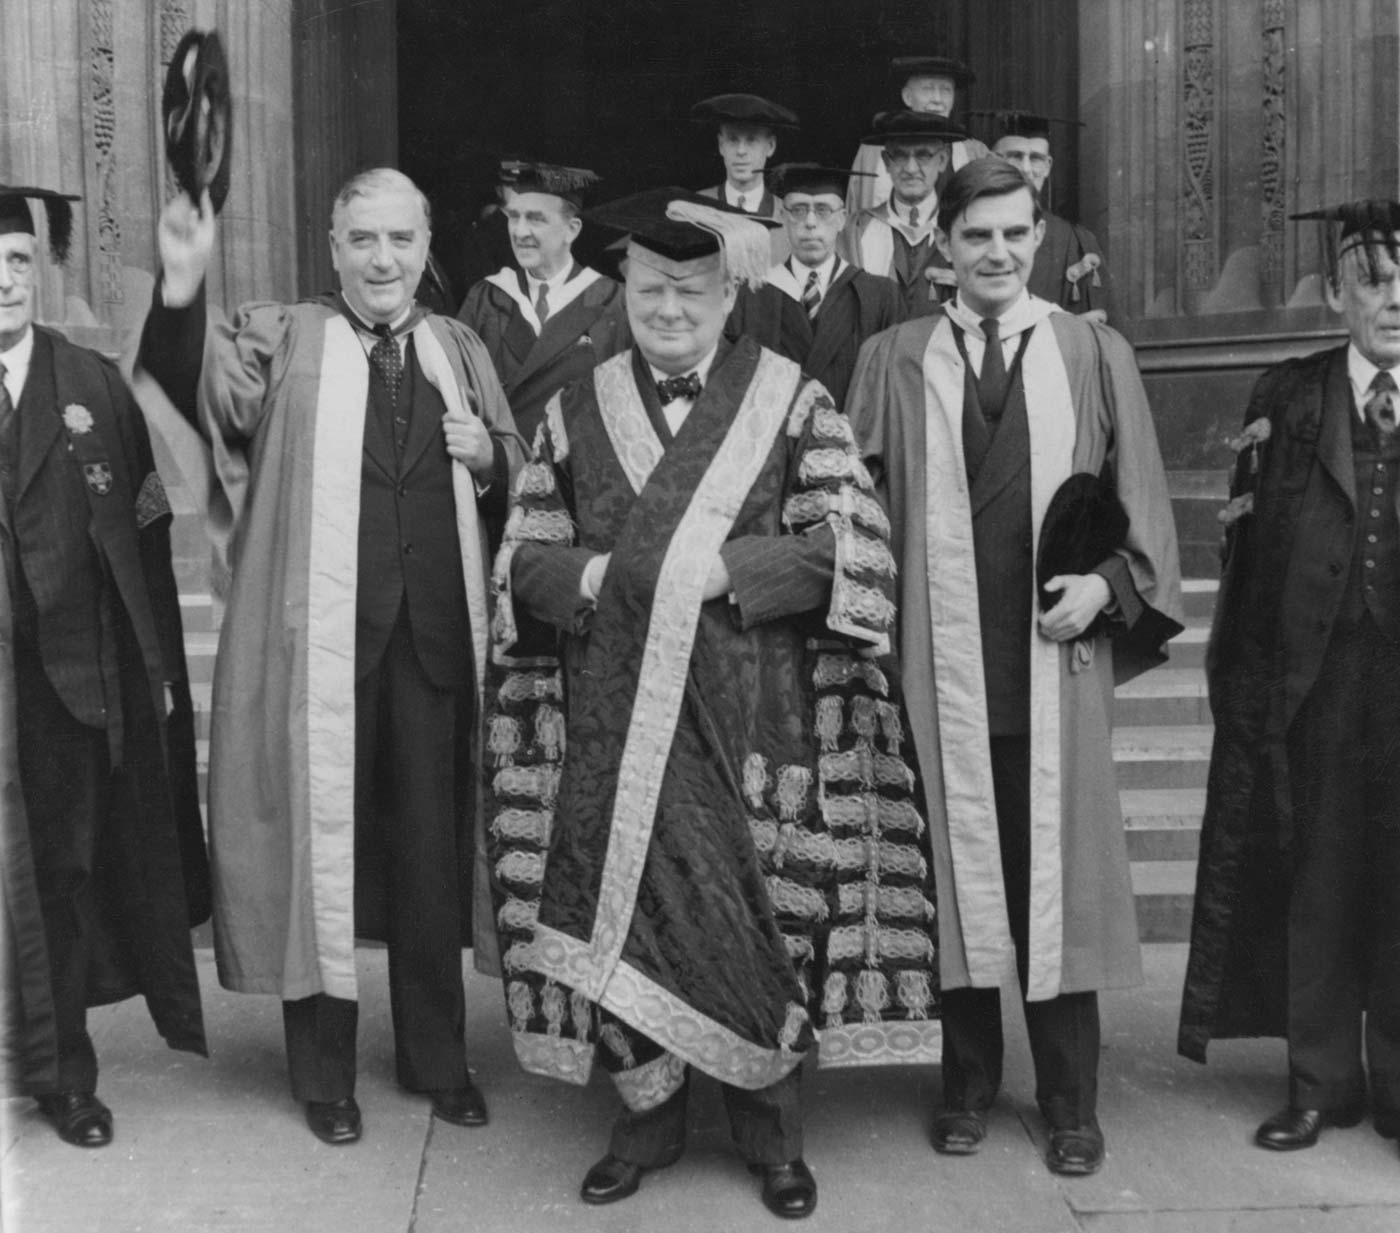 A black and white photo of a group of older men dressed in graduate garb